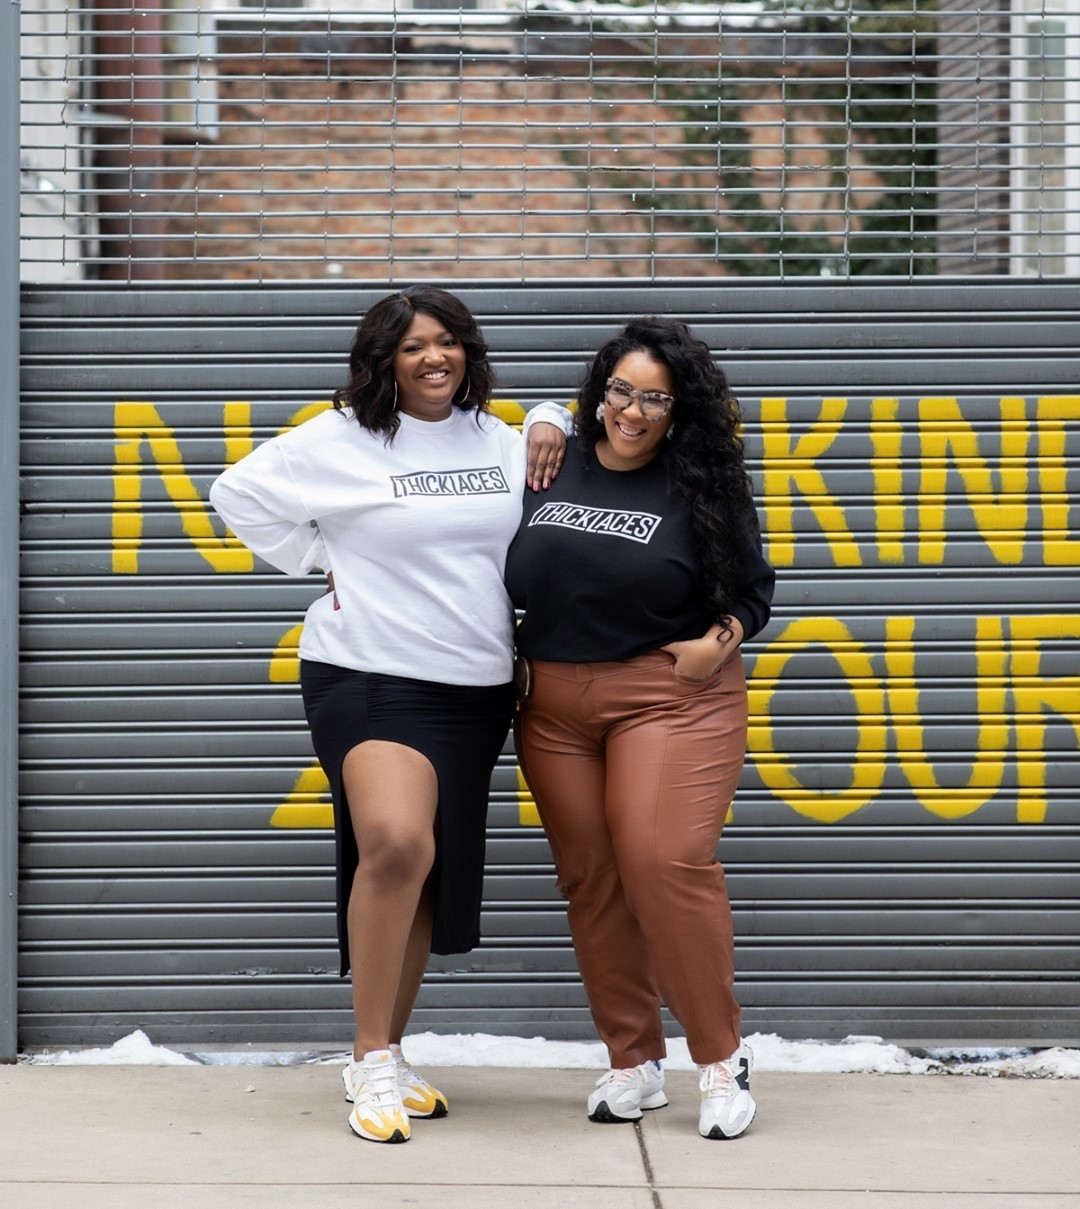 We Interview Essie Golden And Katie Alexis On Thick Laces Launch: An Inclusive Digital Community For...